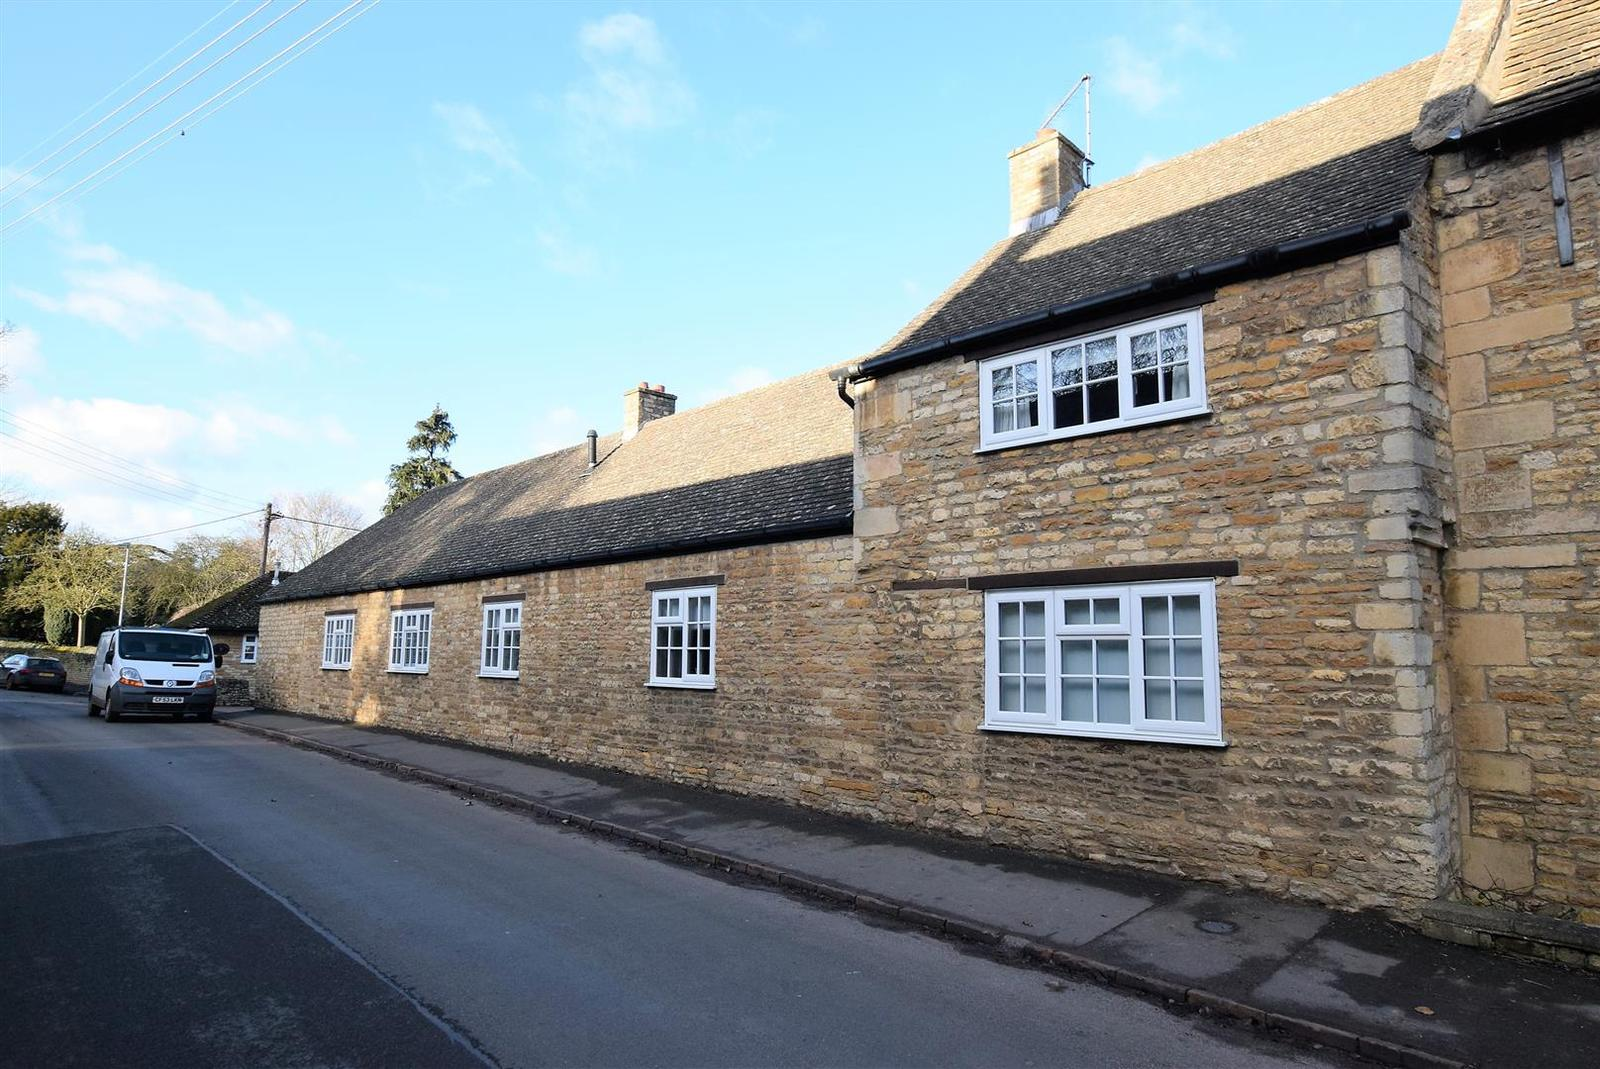 3 Bedrooms Property for sale in High Street, Morcott, Rutland